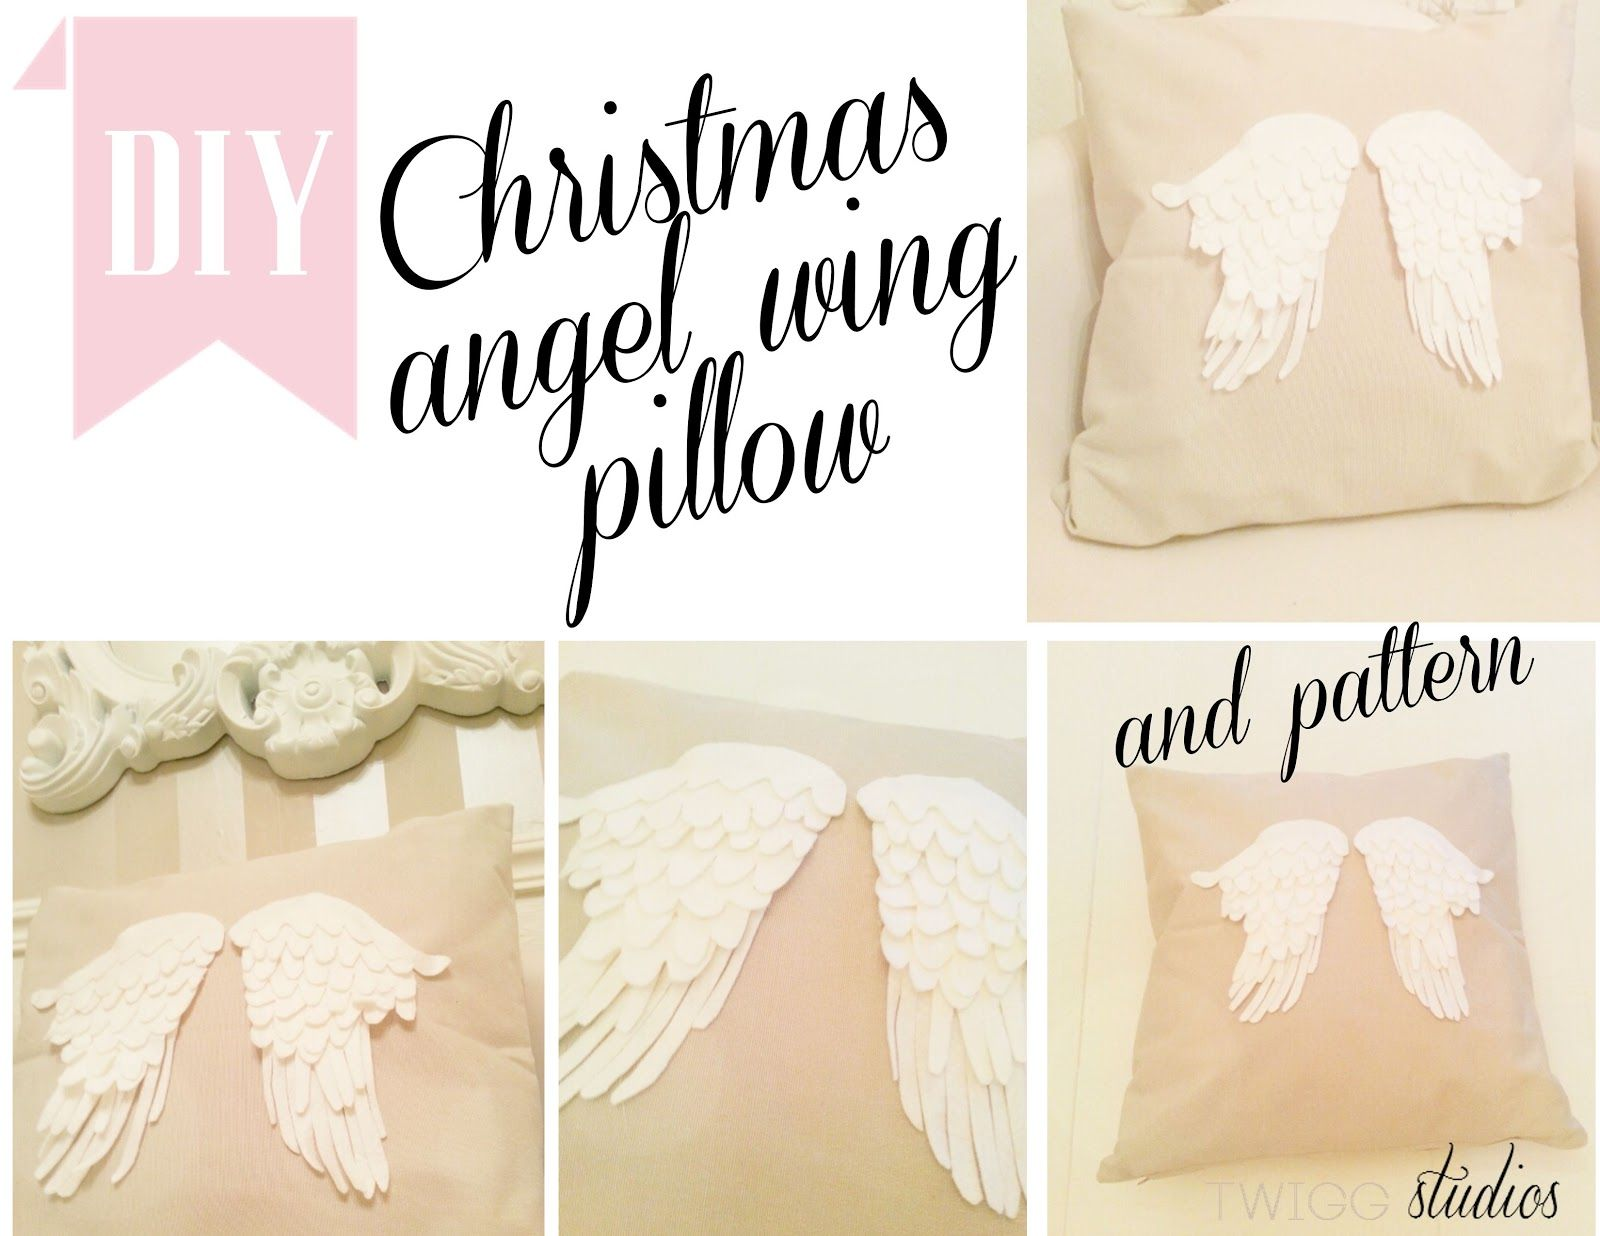 Angel wing pillow make it yourself pinterest angel wings diy angel wings shabby chic crafts angel crafts pillow tutorial fabric crafts diy crafts craft projects sewing projects holiday crafts solutioingenieria Image collections